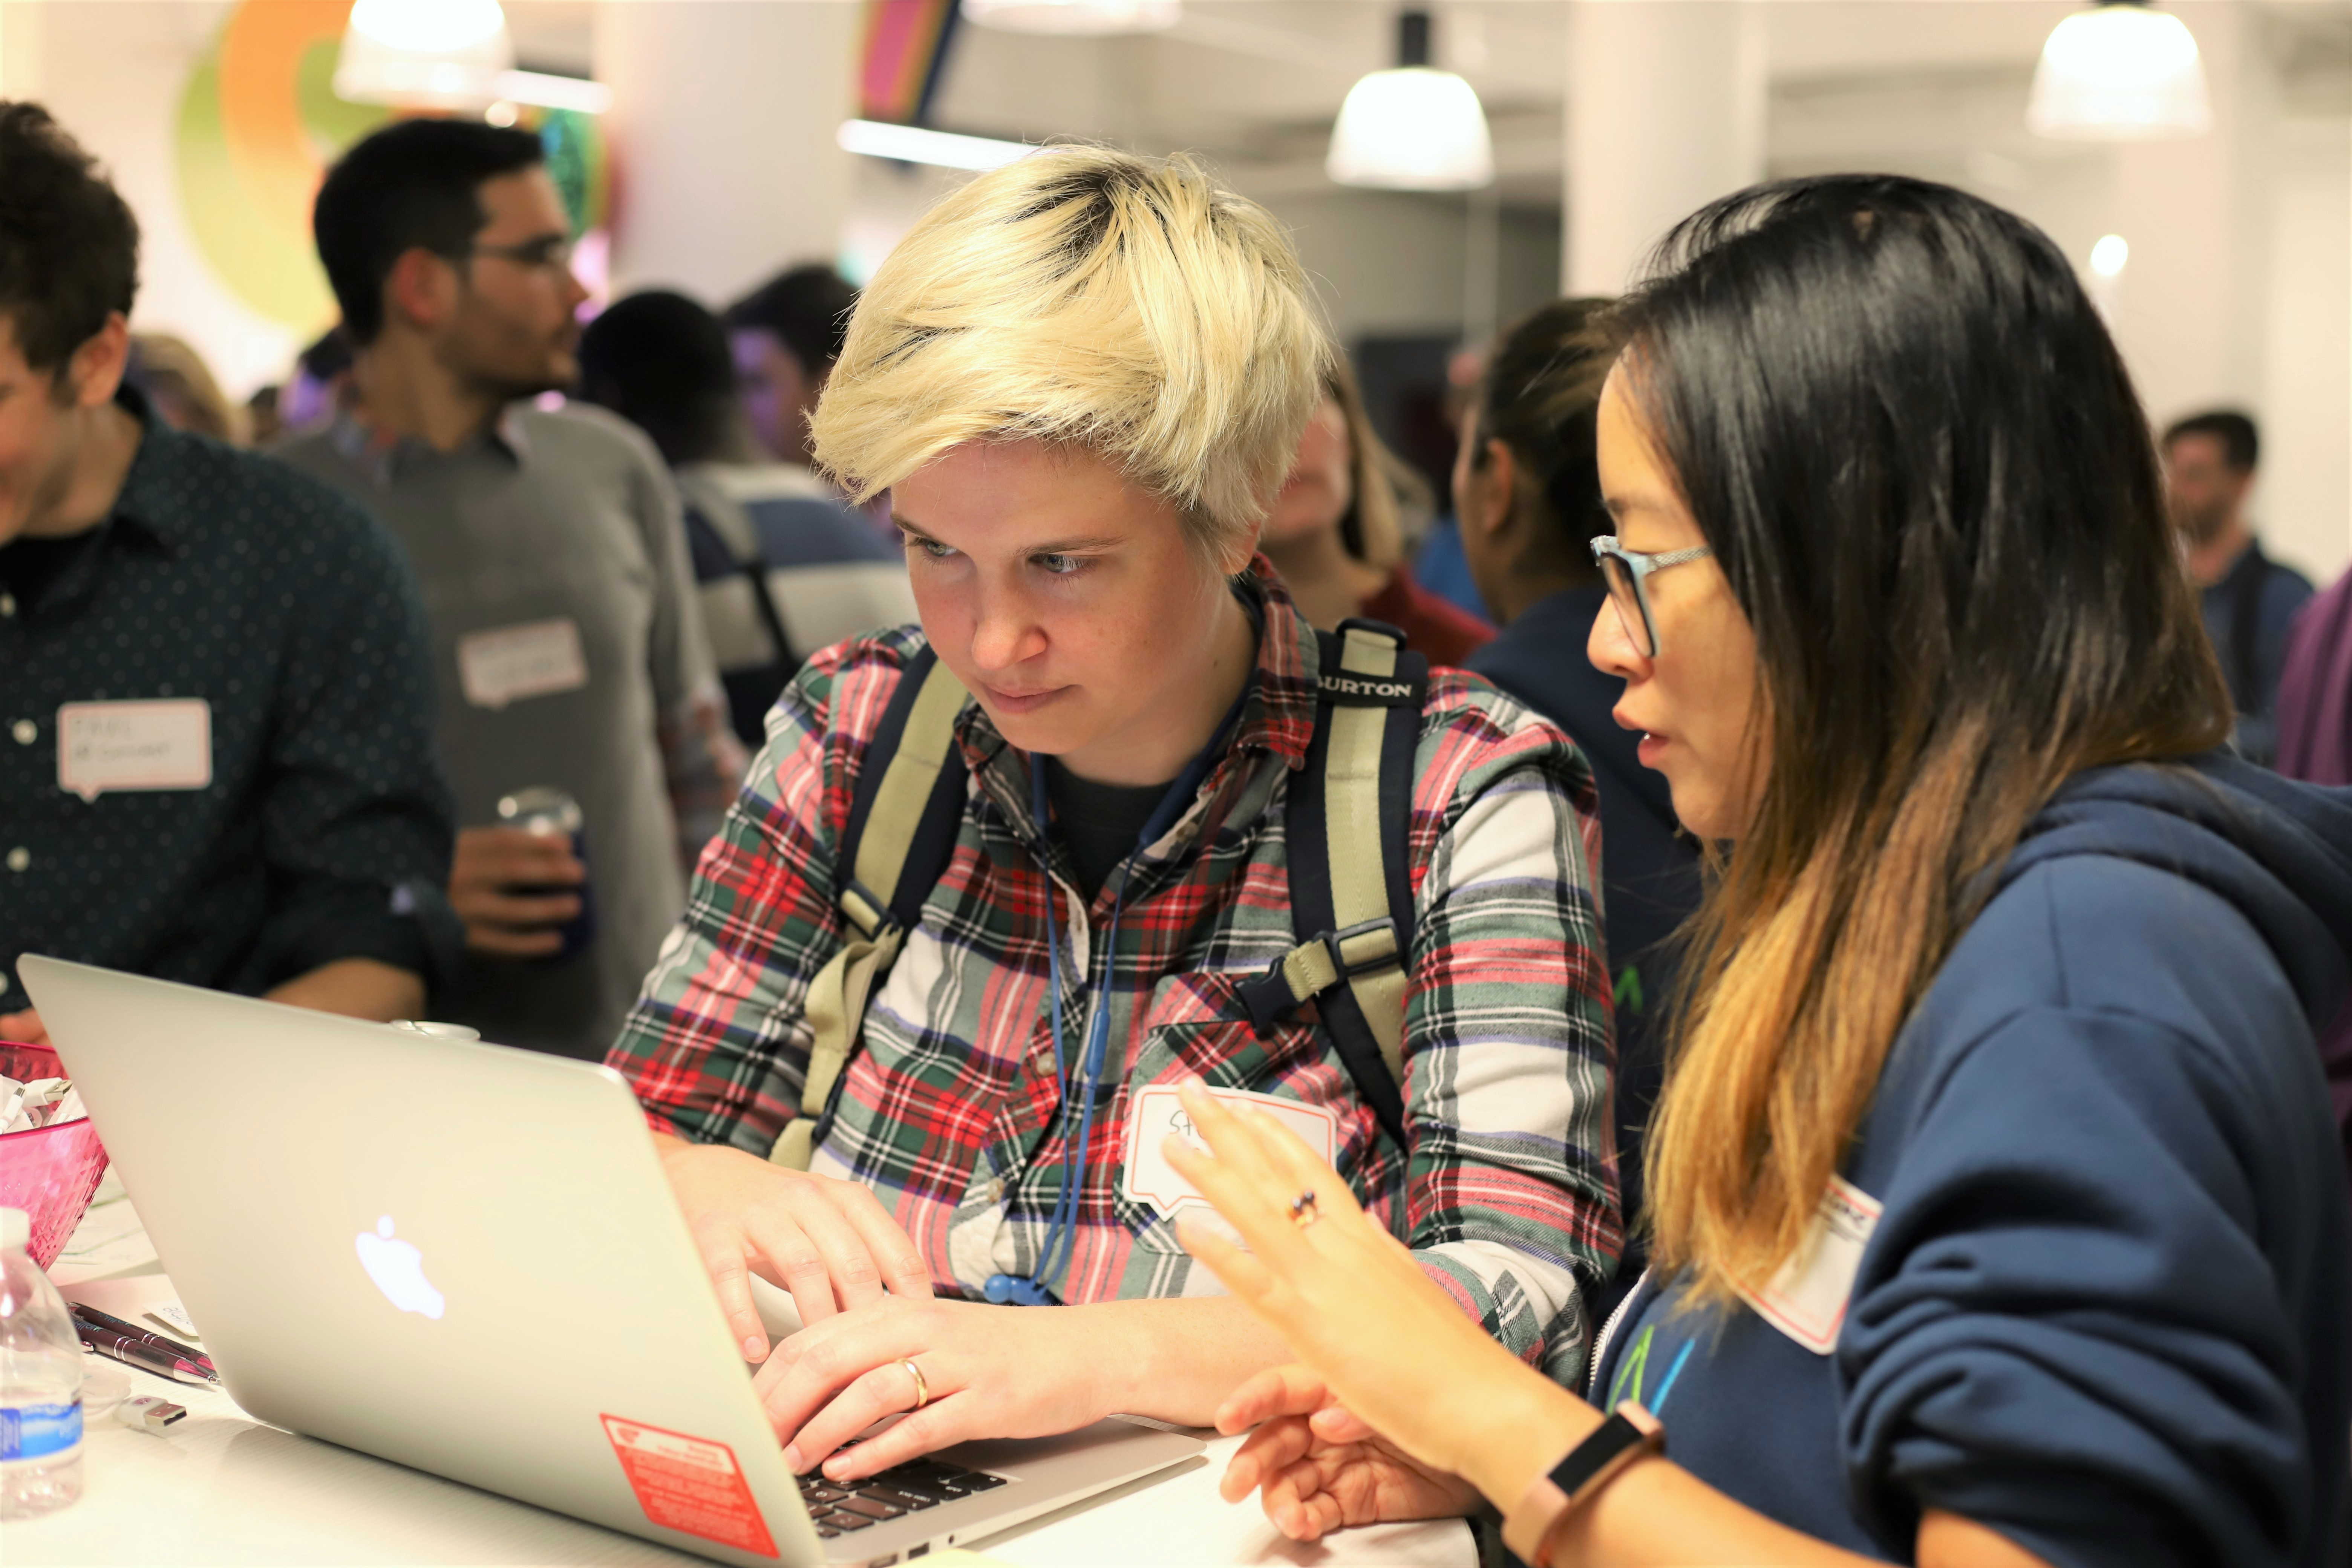 This photo shows a woman with short blonde hair testing softwareat a user testing event while she talks to a woman with dark hair who is explaining the product.